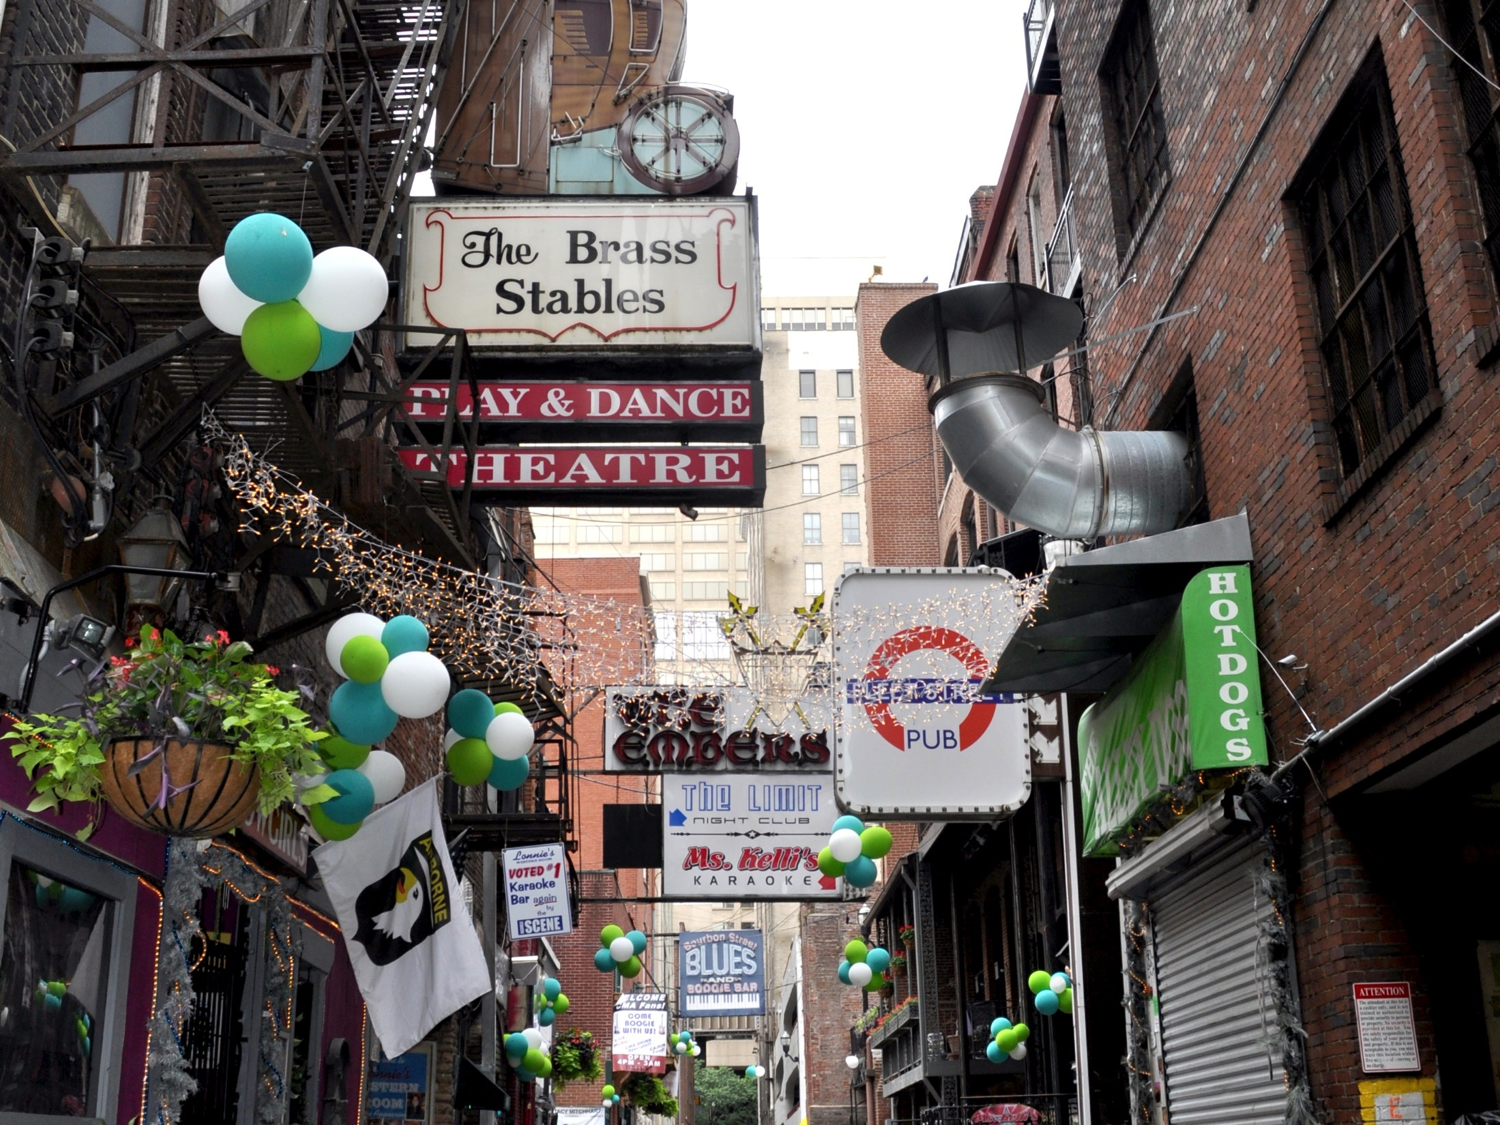 Printers Alley Itself by Chris Connelly via Flickr (CC BY 2.0)